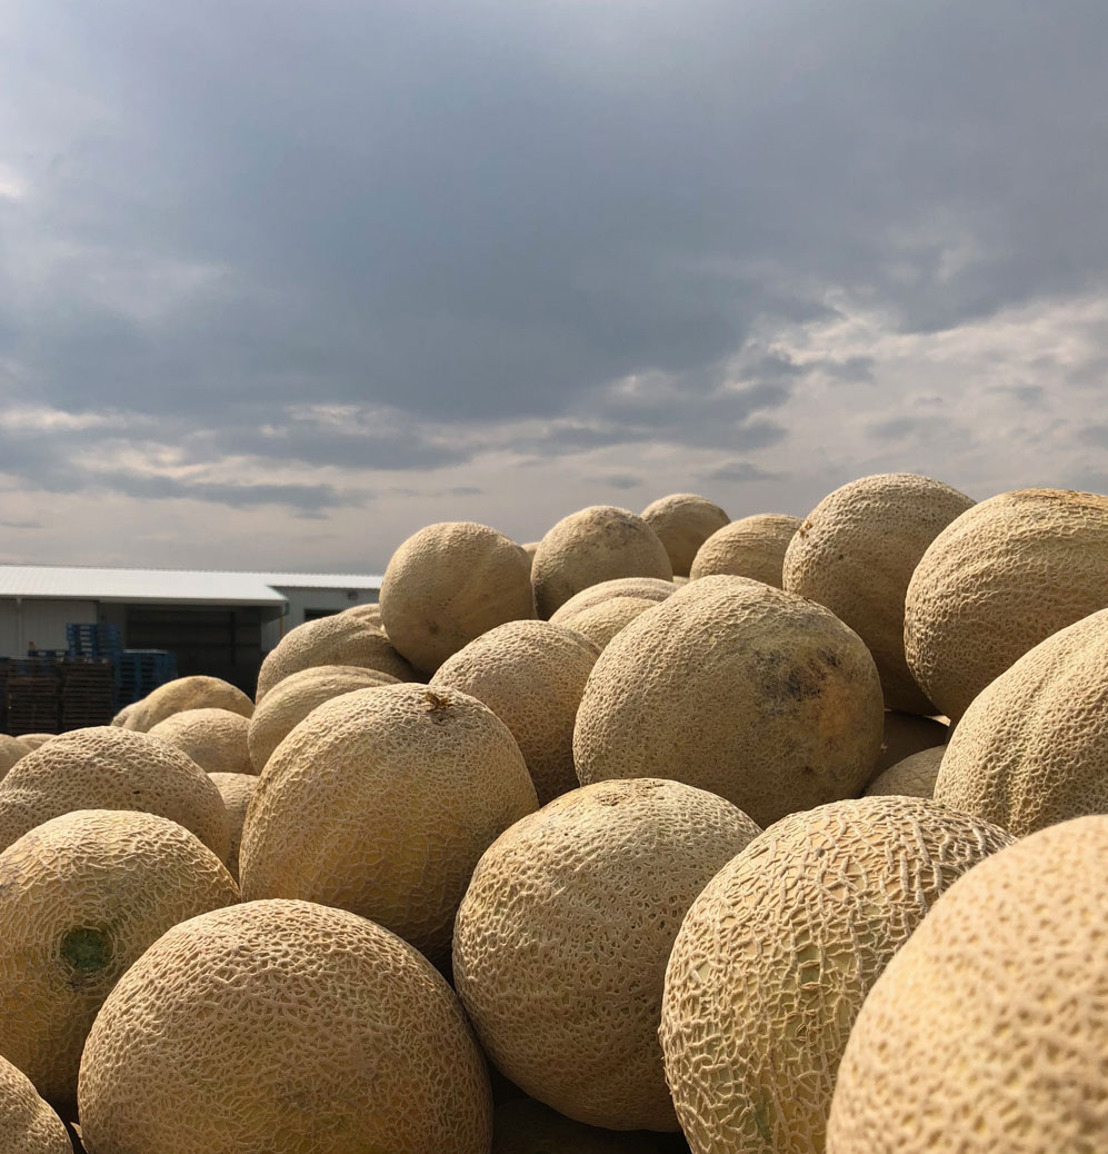 Last chance for Rocky Ford Melons and Cantaloupes!